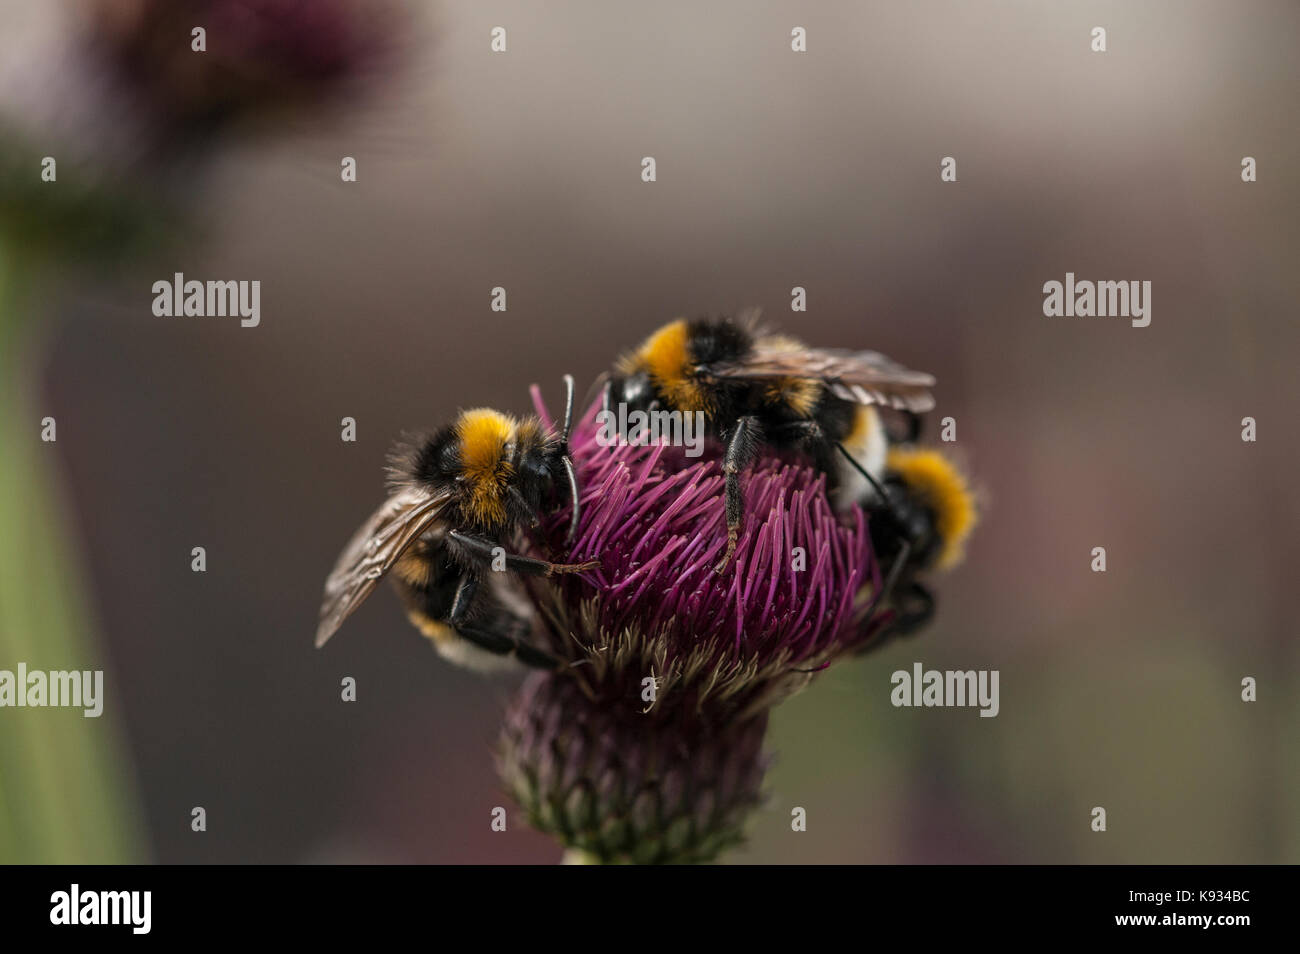 Close-up of bees collecting pollen from a Cirsium rivulare flower - Stock Image